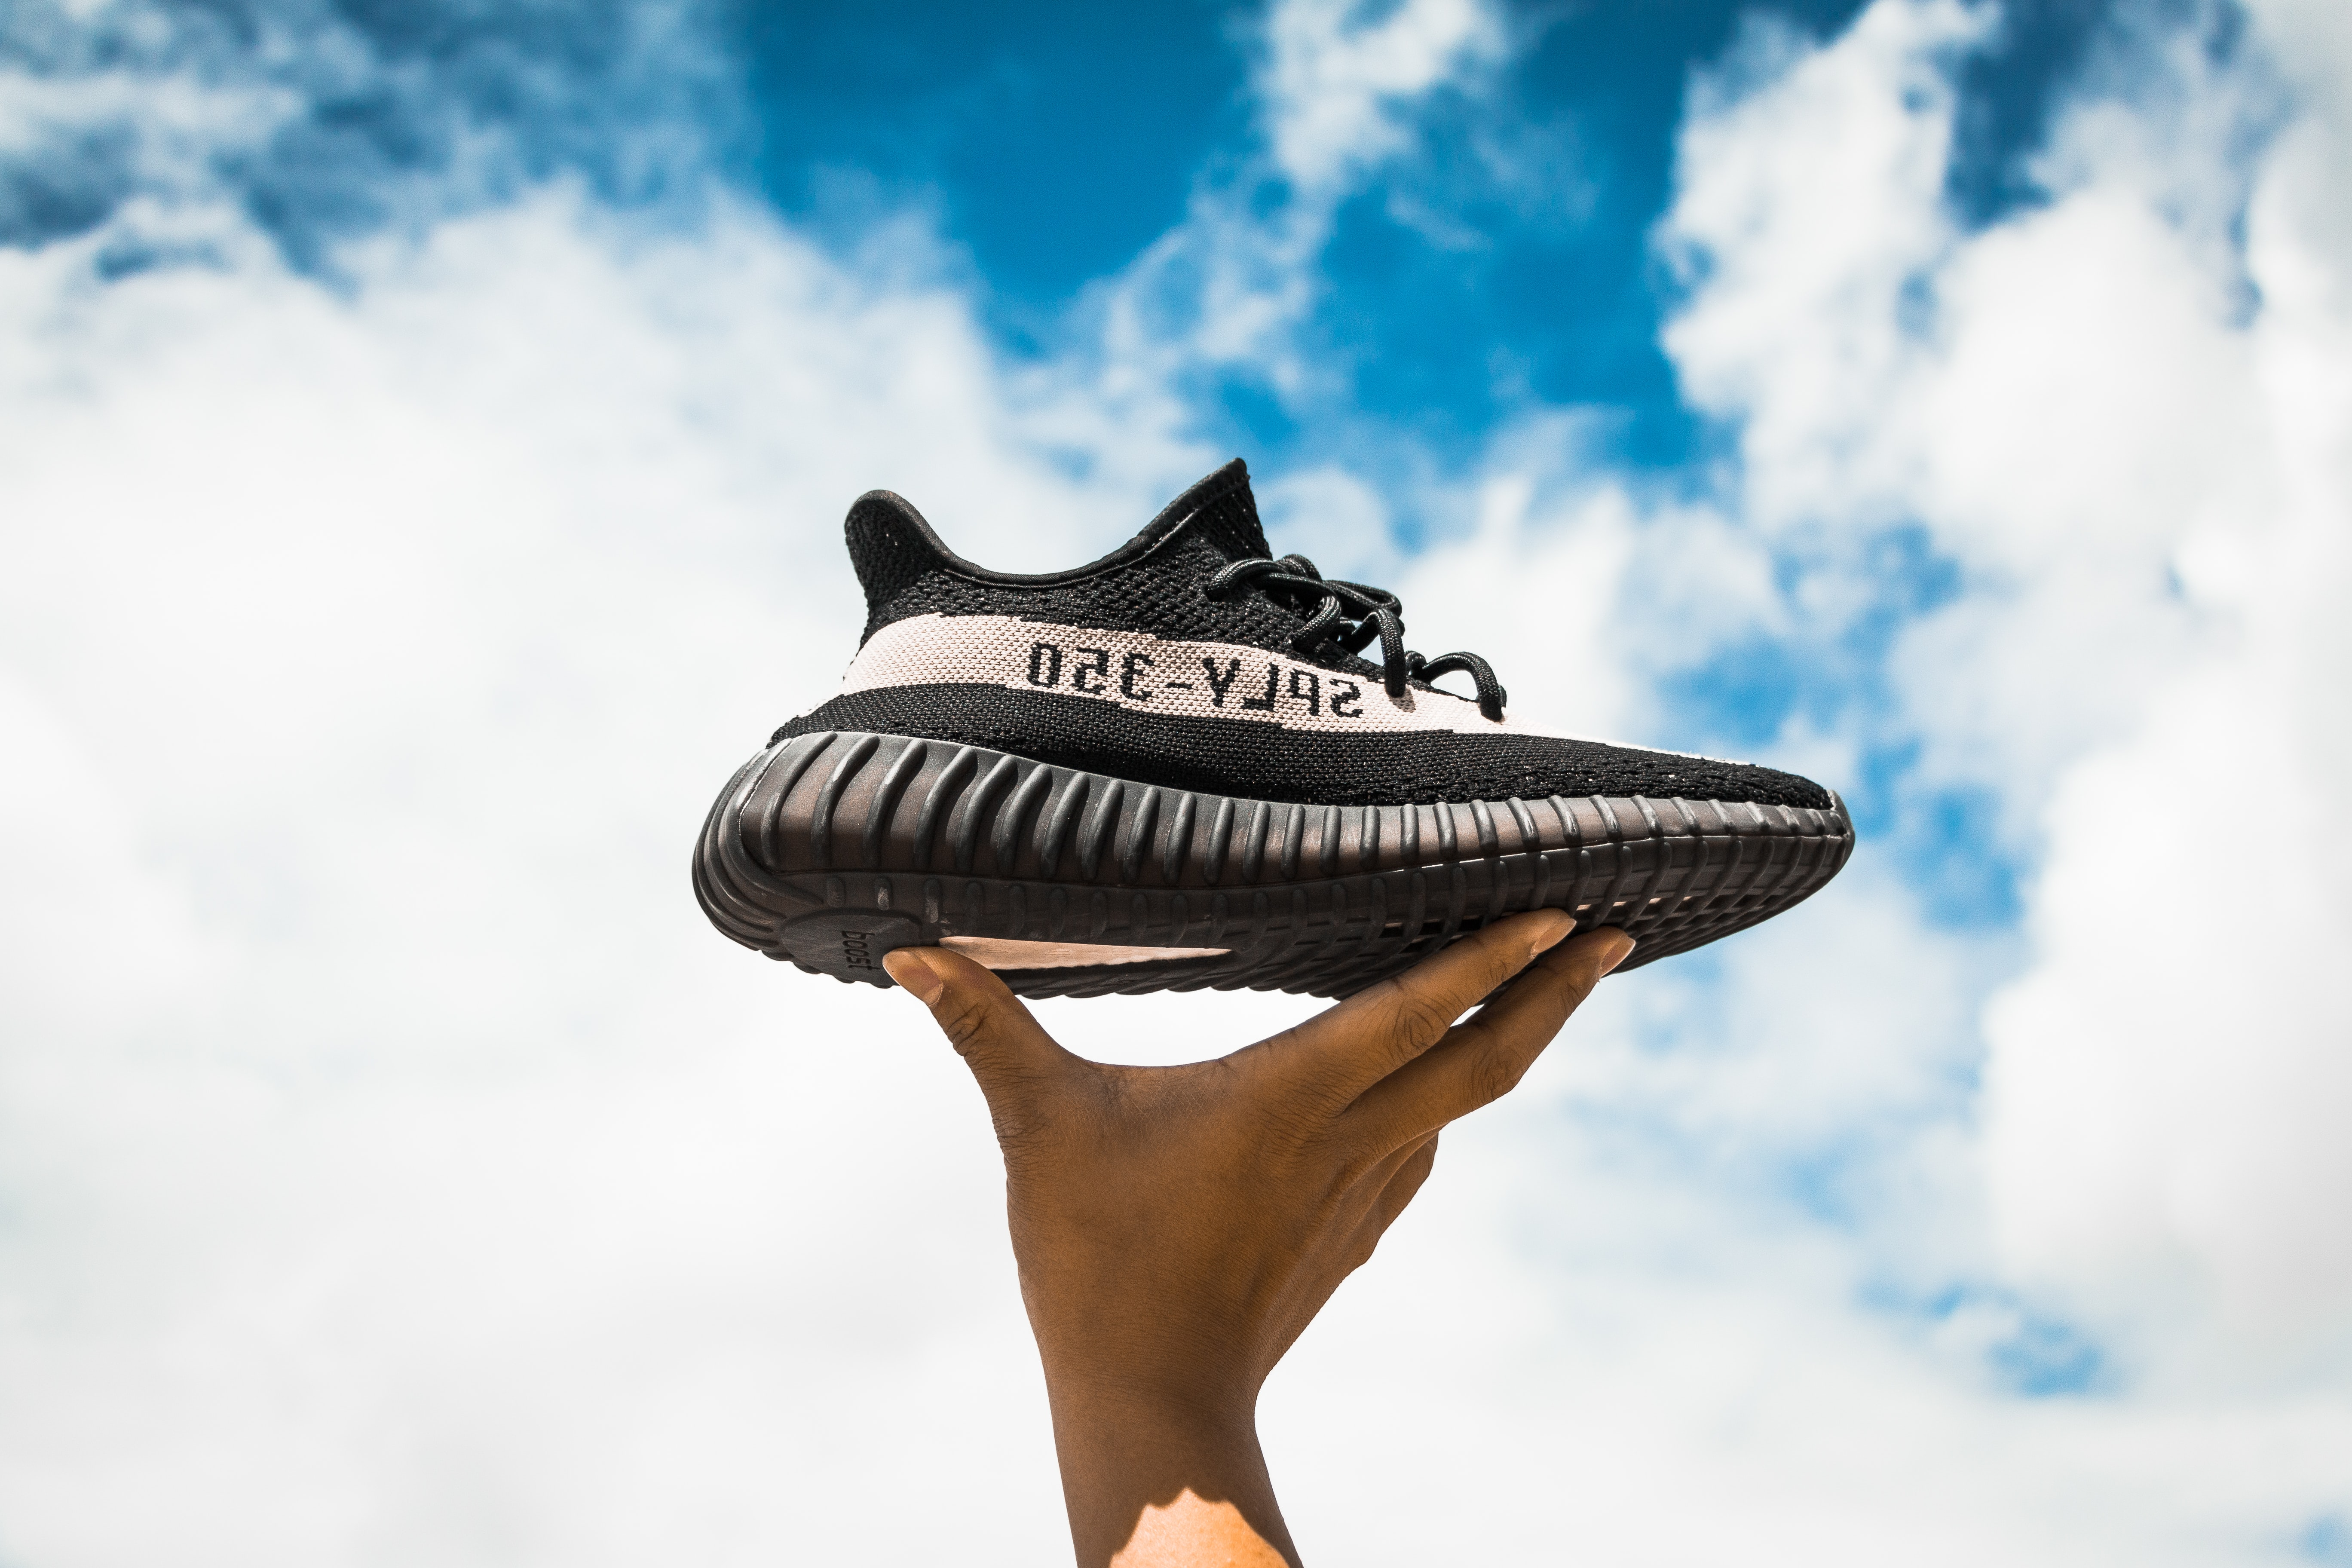 unpaired adidas Yeezy Boost 350 V2 shoe on person's hand